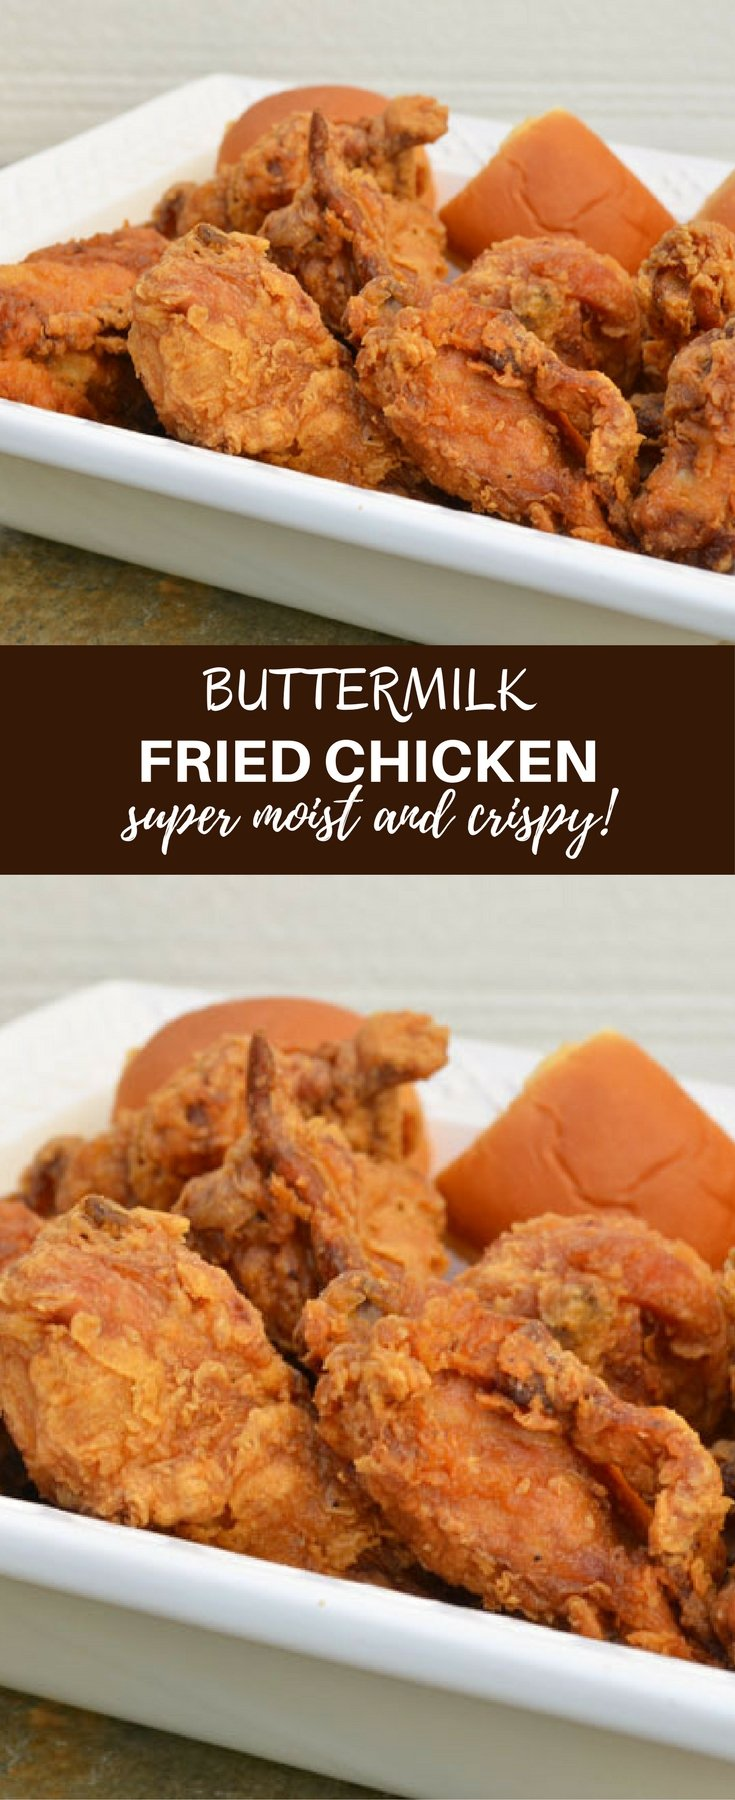 Crispy Buttermilk Fried Chicken is guaranteed to be a crowd pleaser. Learn the simple tips on how to make chicken that's moist and juicy on the inside and golden and crispy on the outside!